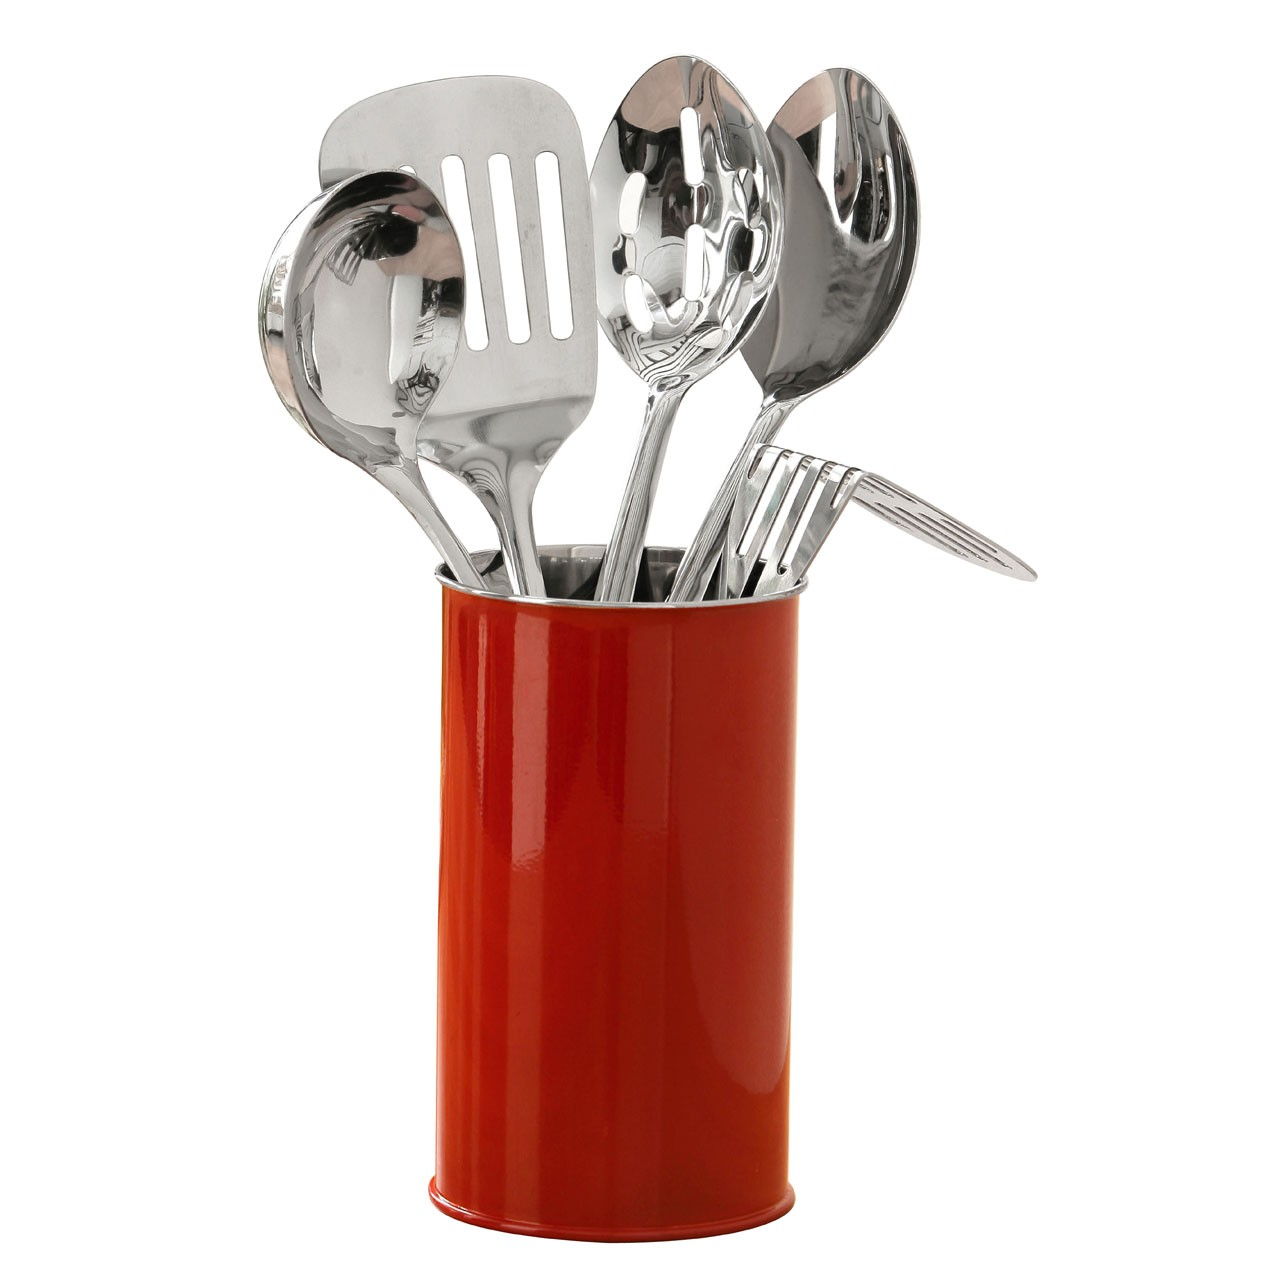 Kitchen Tool Set with Canister, 5 Pieces - Red